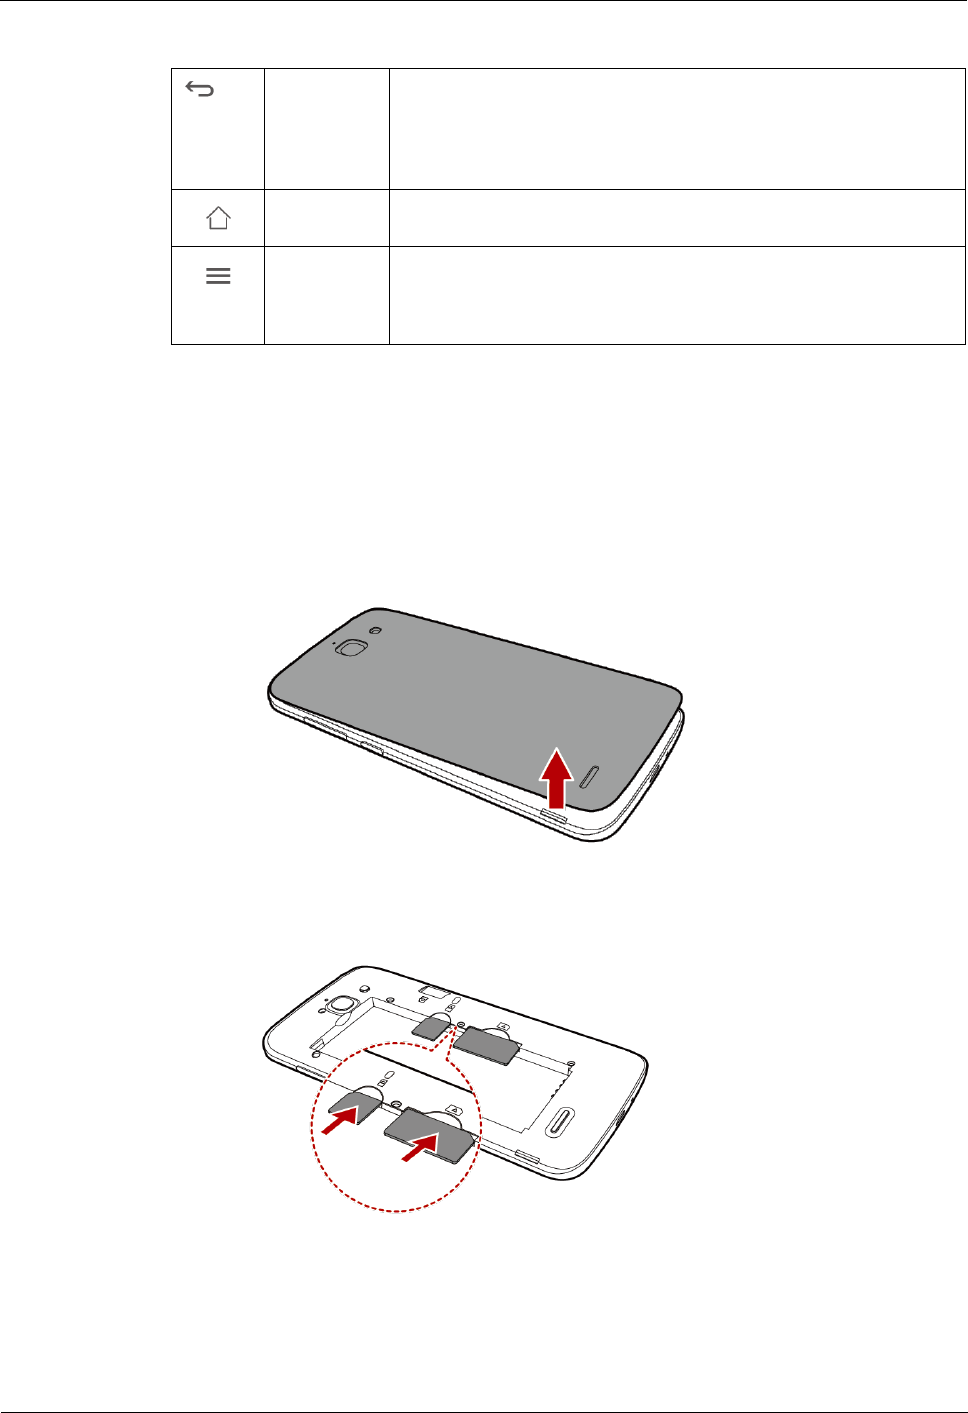 Huawei Release Notes G730 Smartphone Faqs V20 Circuit Diagram